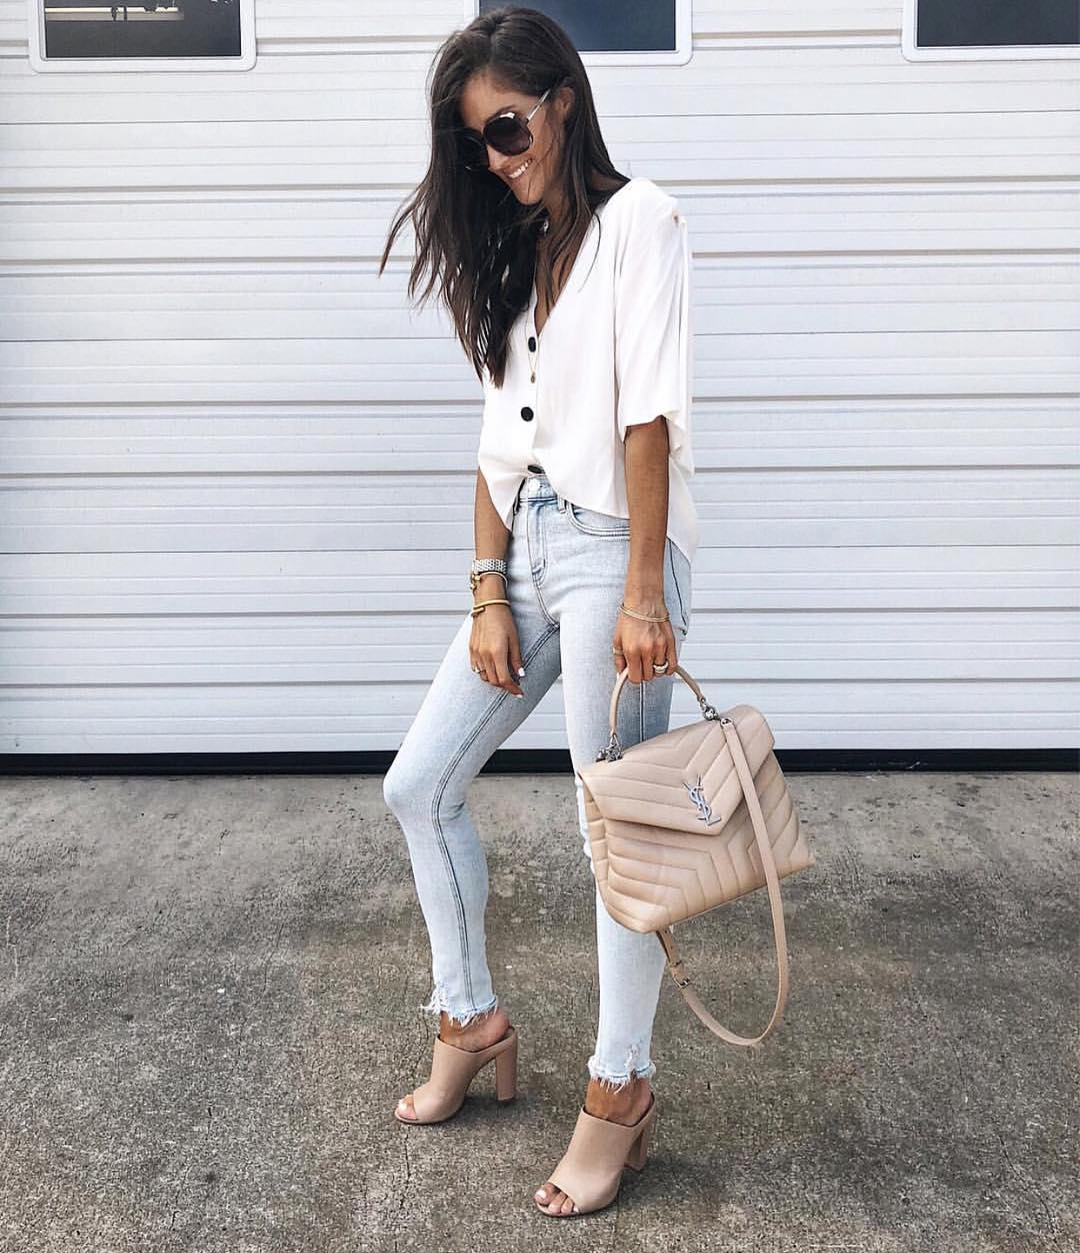 V-neck White Shirt With Wash Blue Skinnies And Peep Toe Mules For Summer 2020